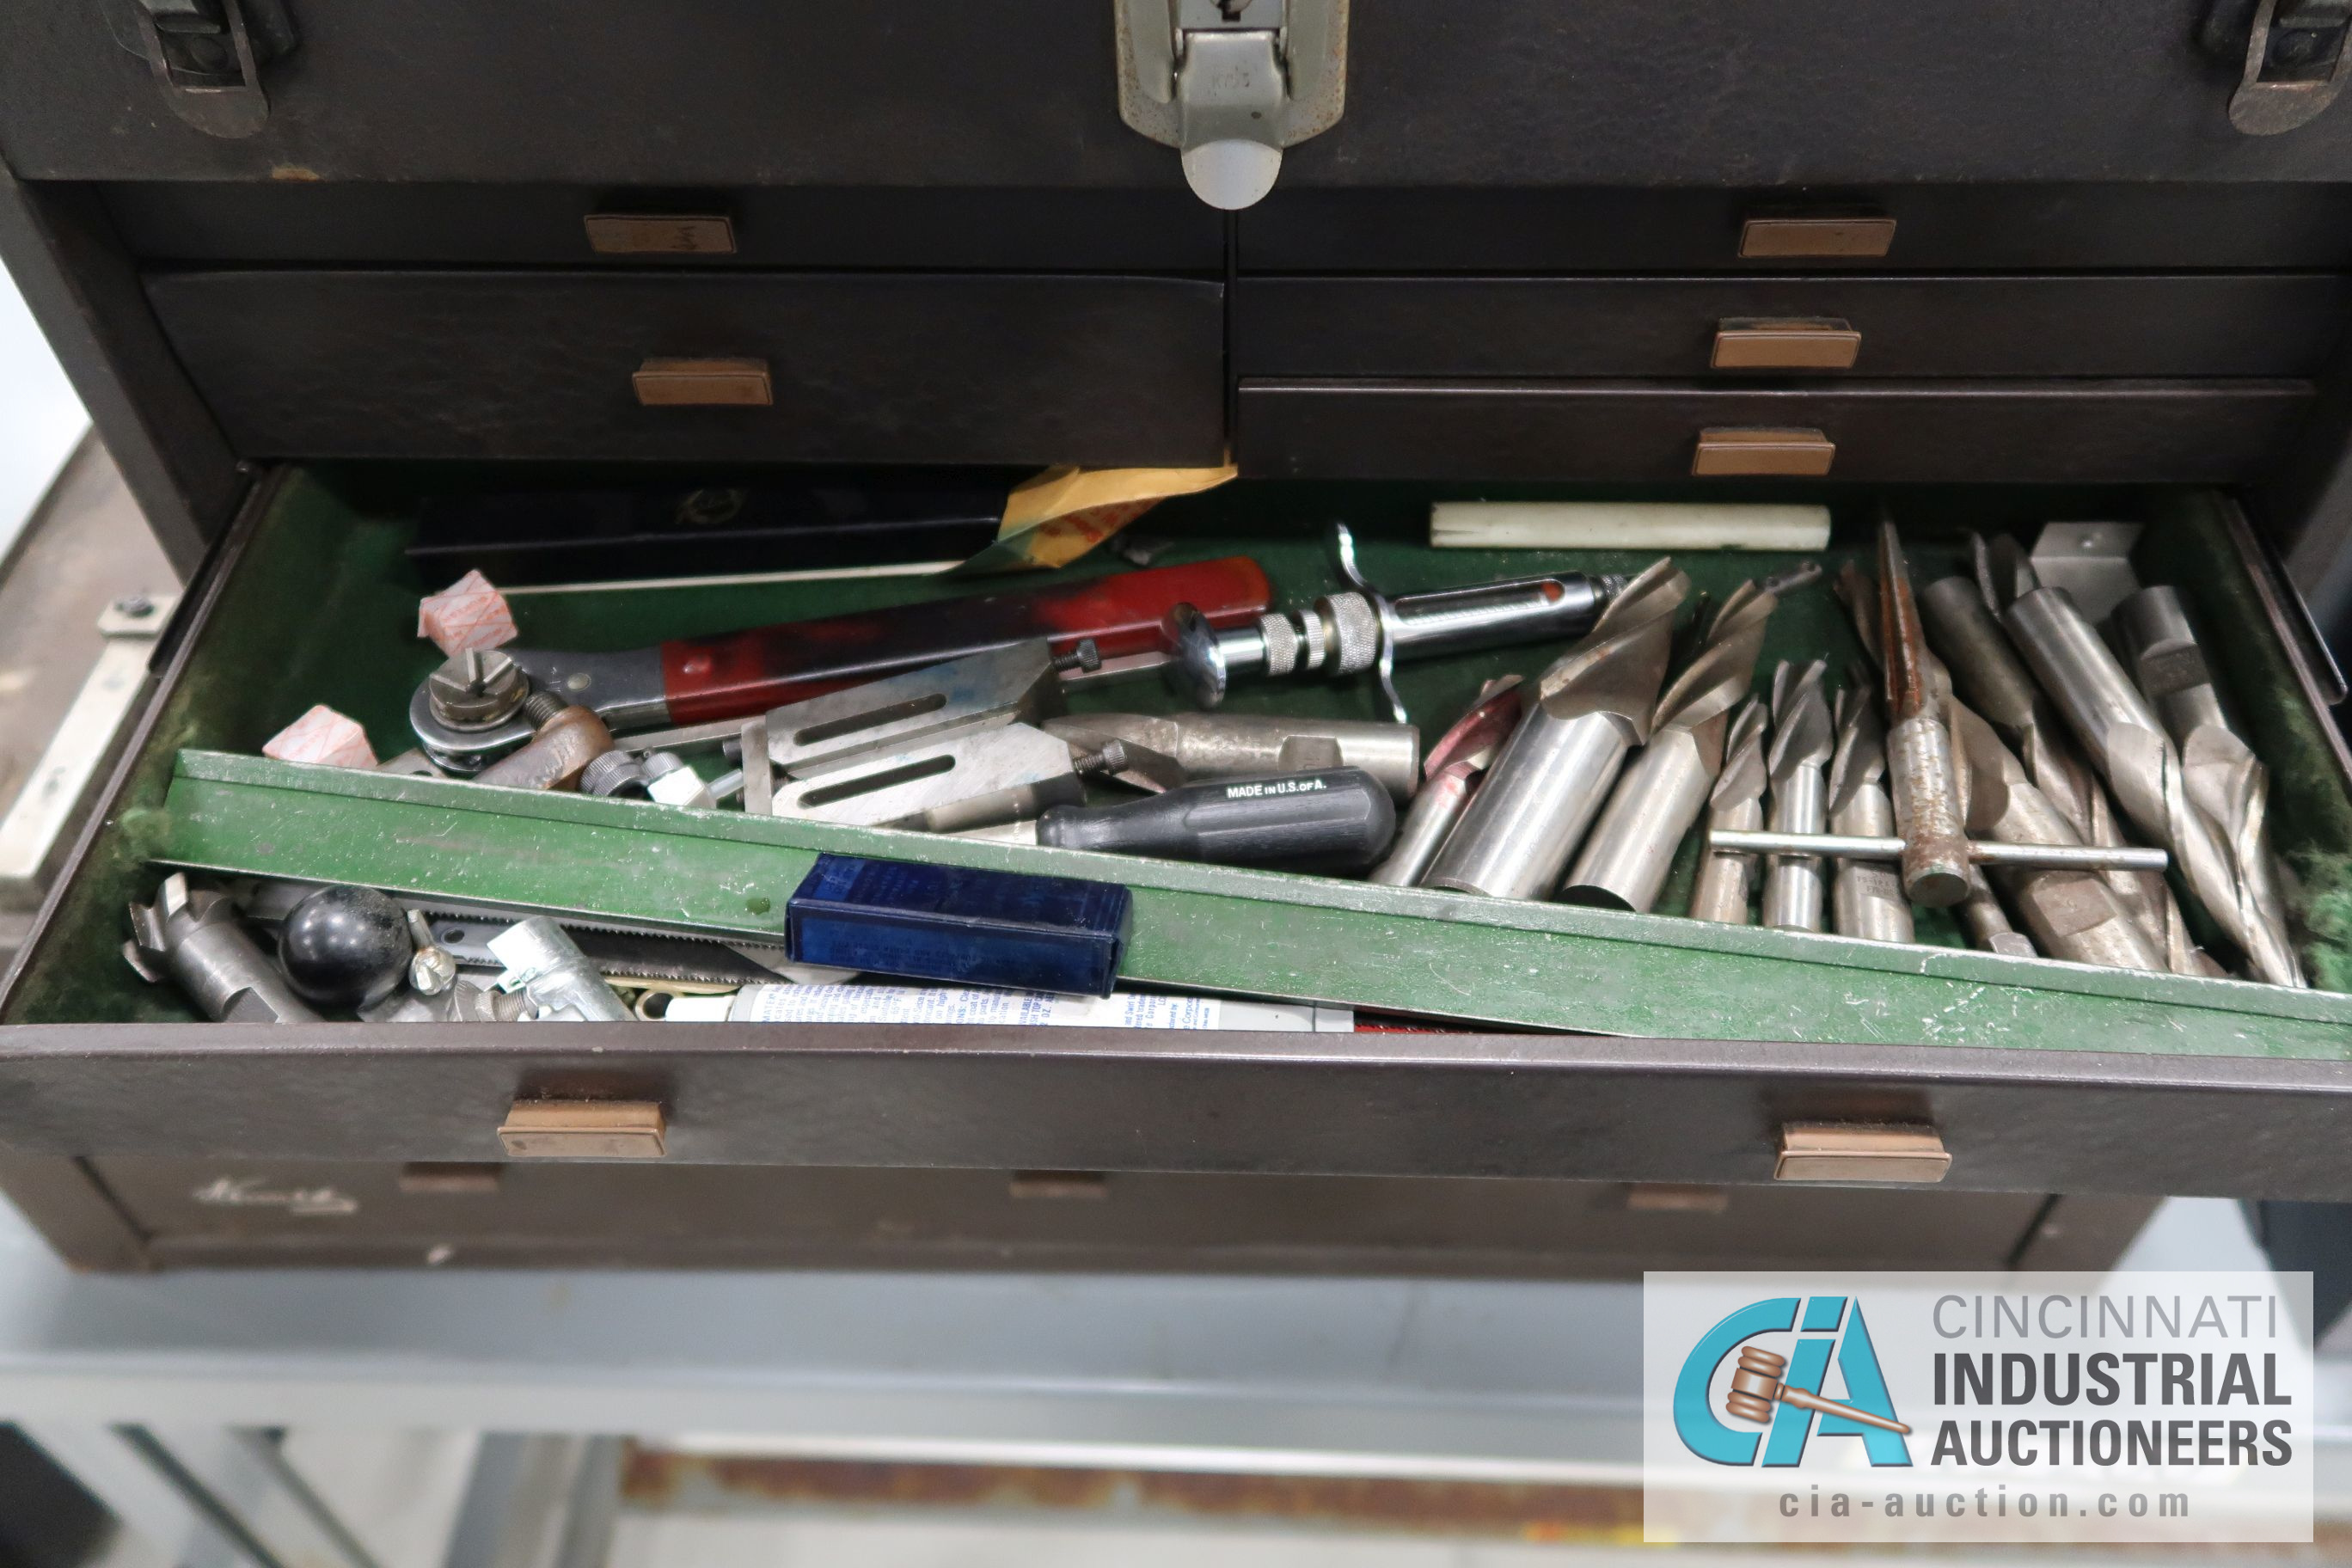 KENNEDY MACHINIST TOOL CHESTS WITH MISCELLANEOUS - Image 5 of 7